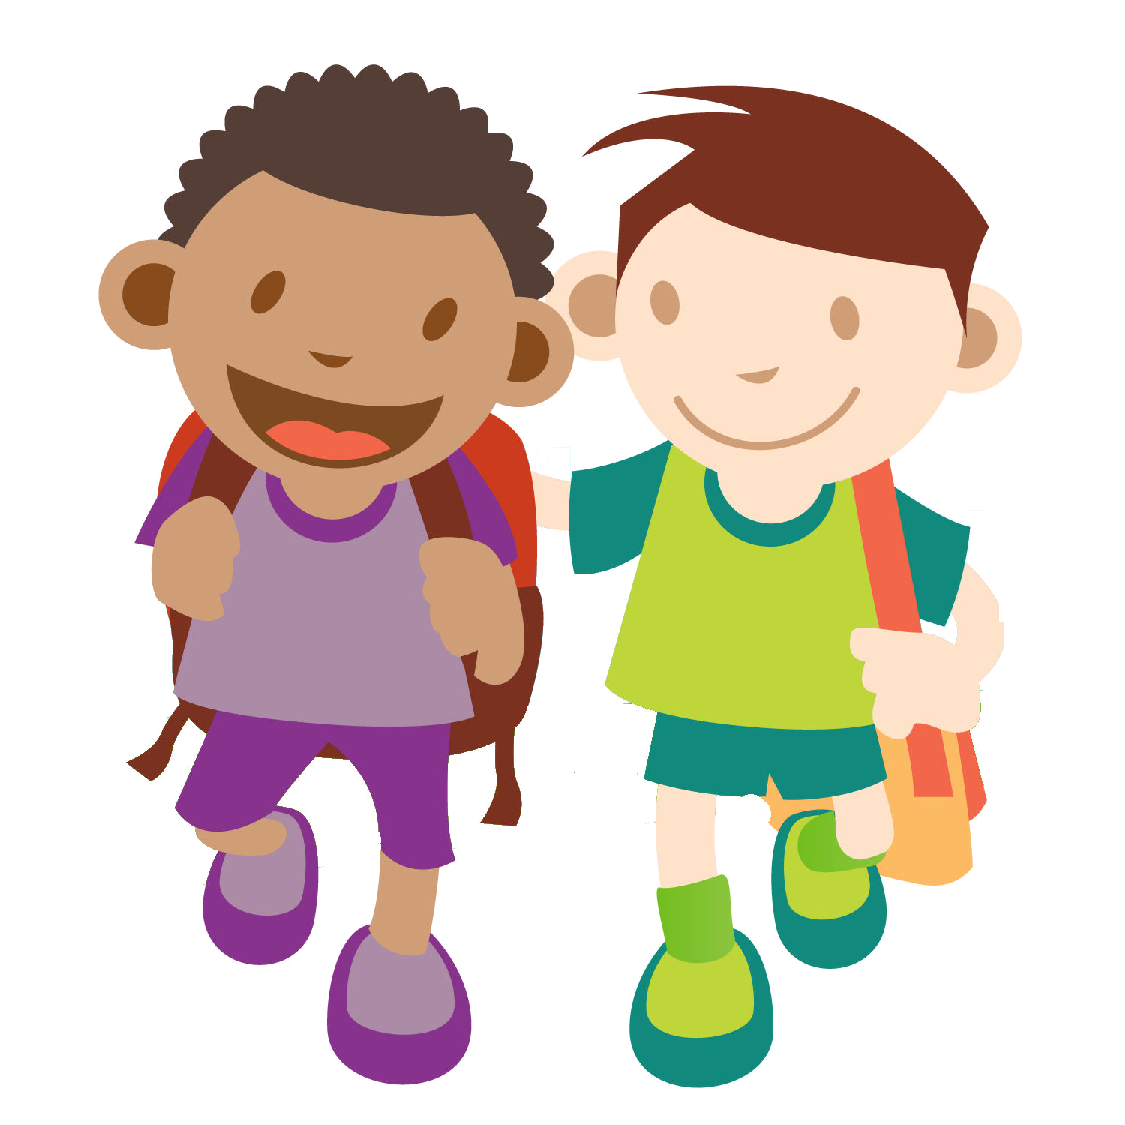 1125x1125 Kids Walking Clipart